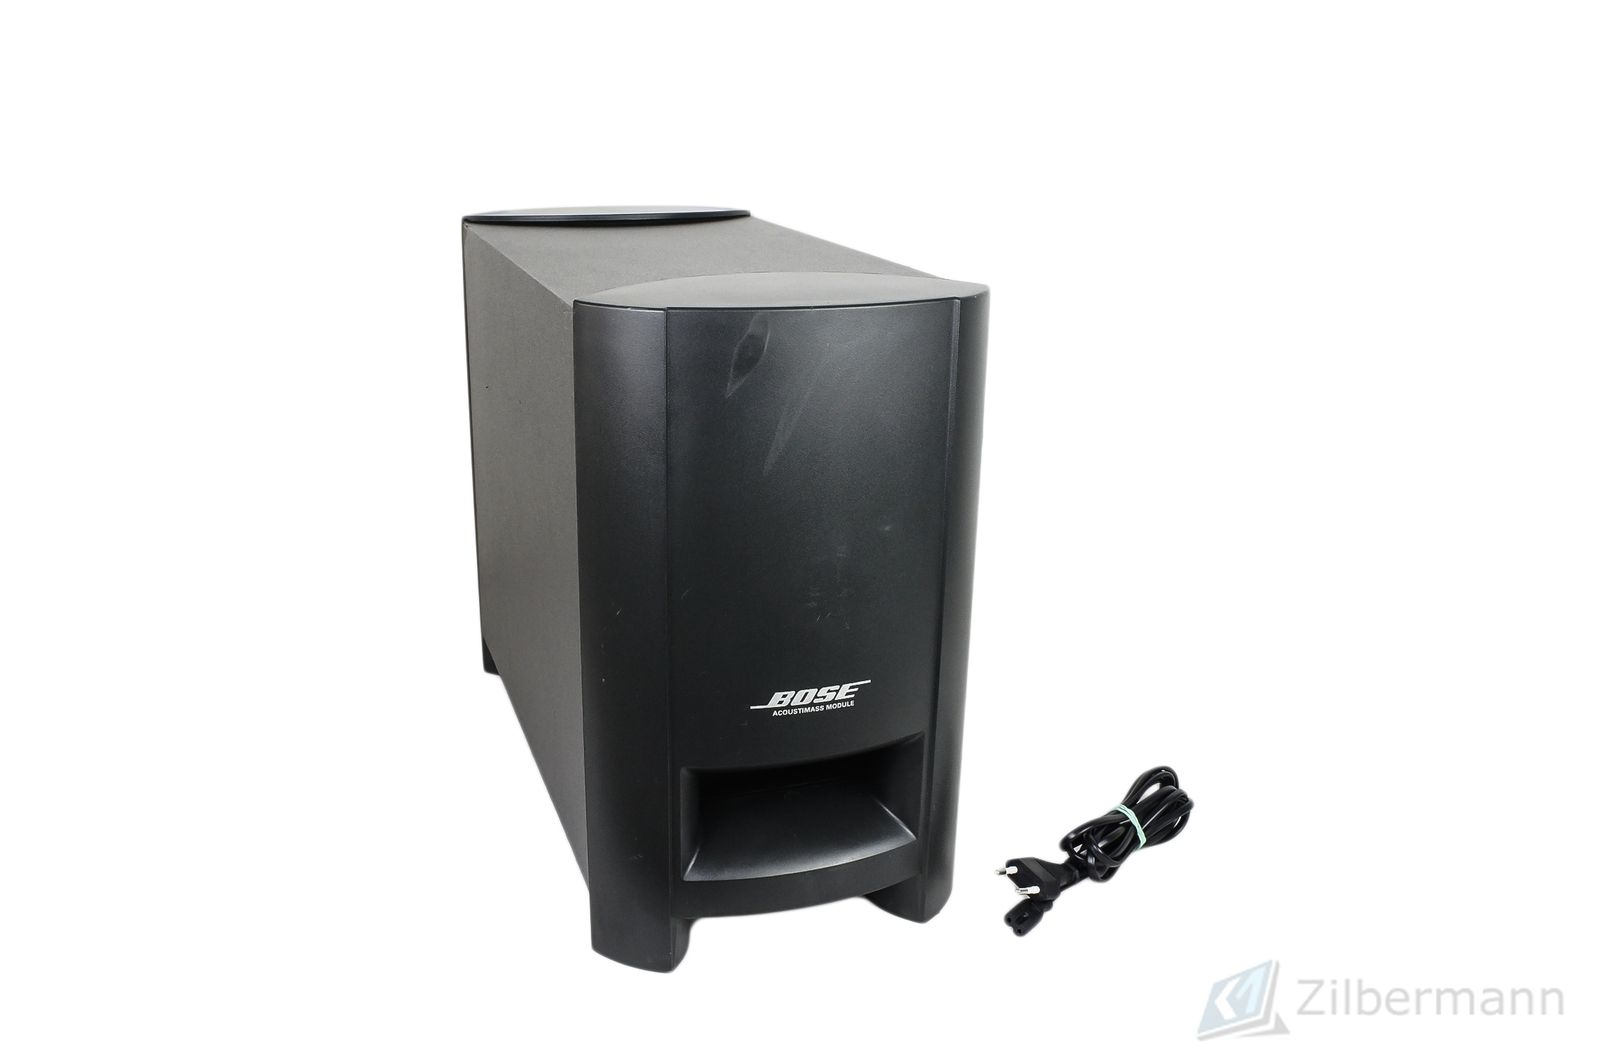 Bose_321_3-2-1_Series_II_Subwoofer_Powered_07